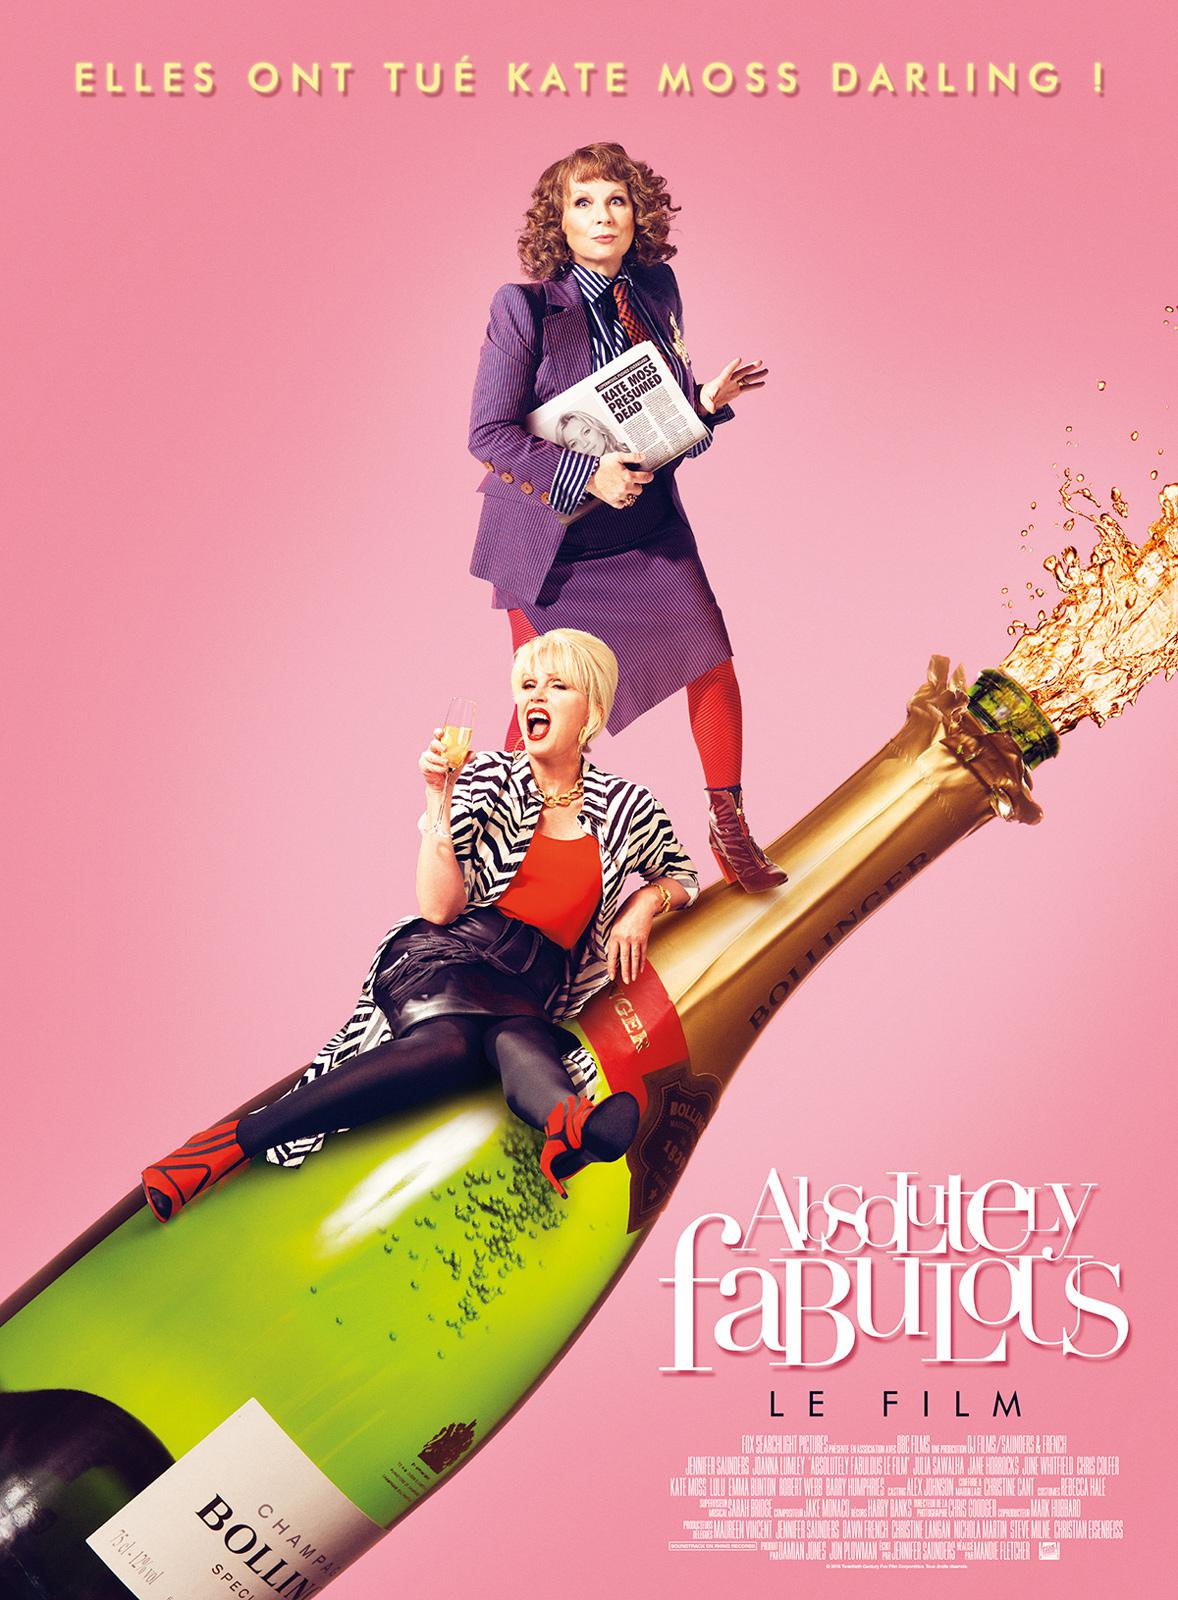 Absolutely Fabulous : Le Film Vostfr